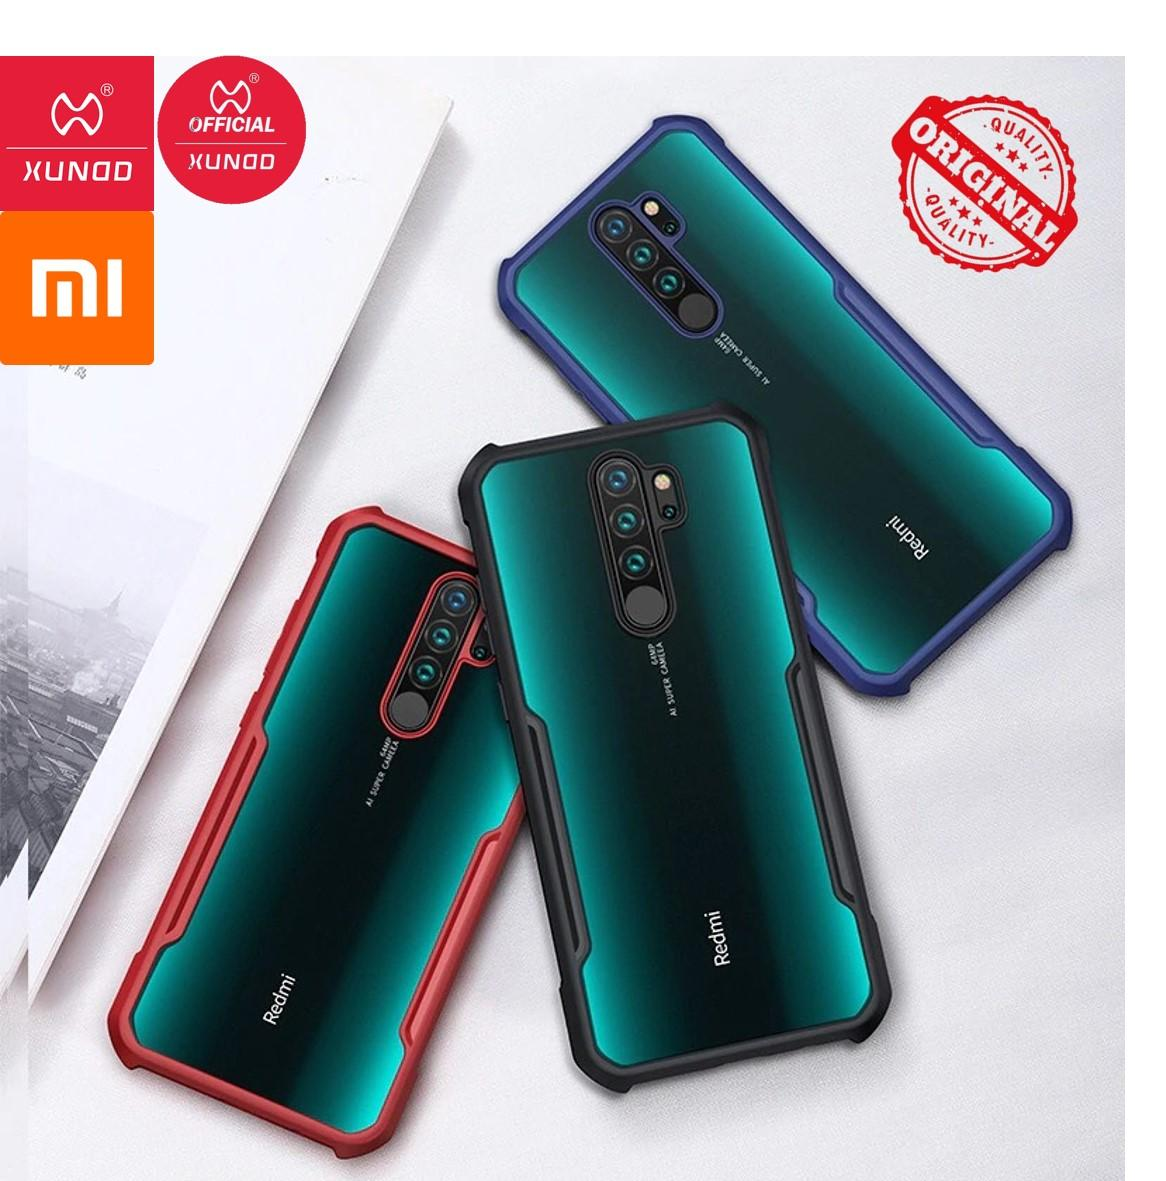 Xiaomi Redmi Note 8 Note 8 Pro Xundd Beetle Case Slim Shockproof Case Lazada Ph